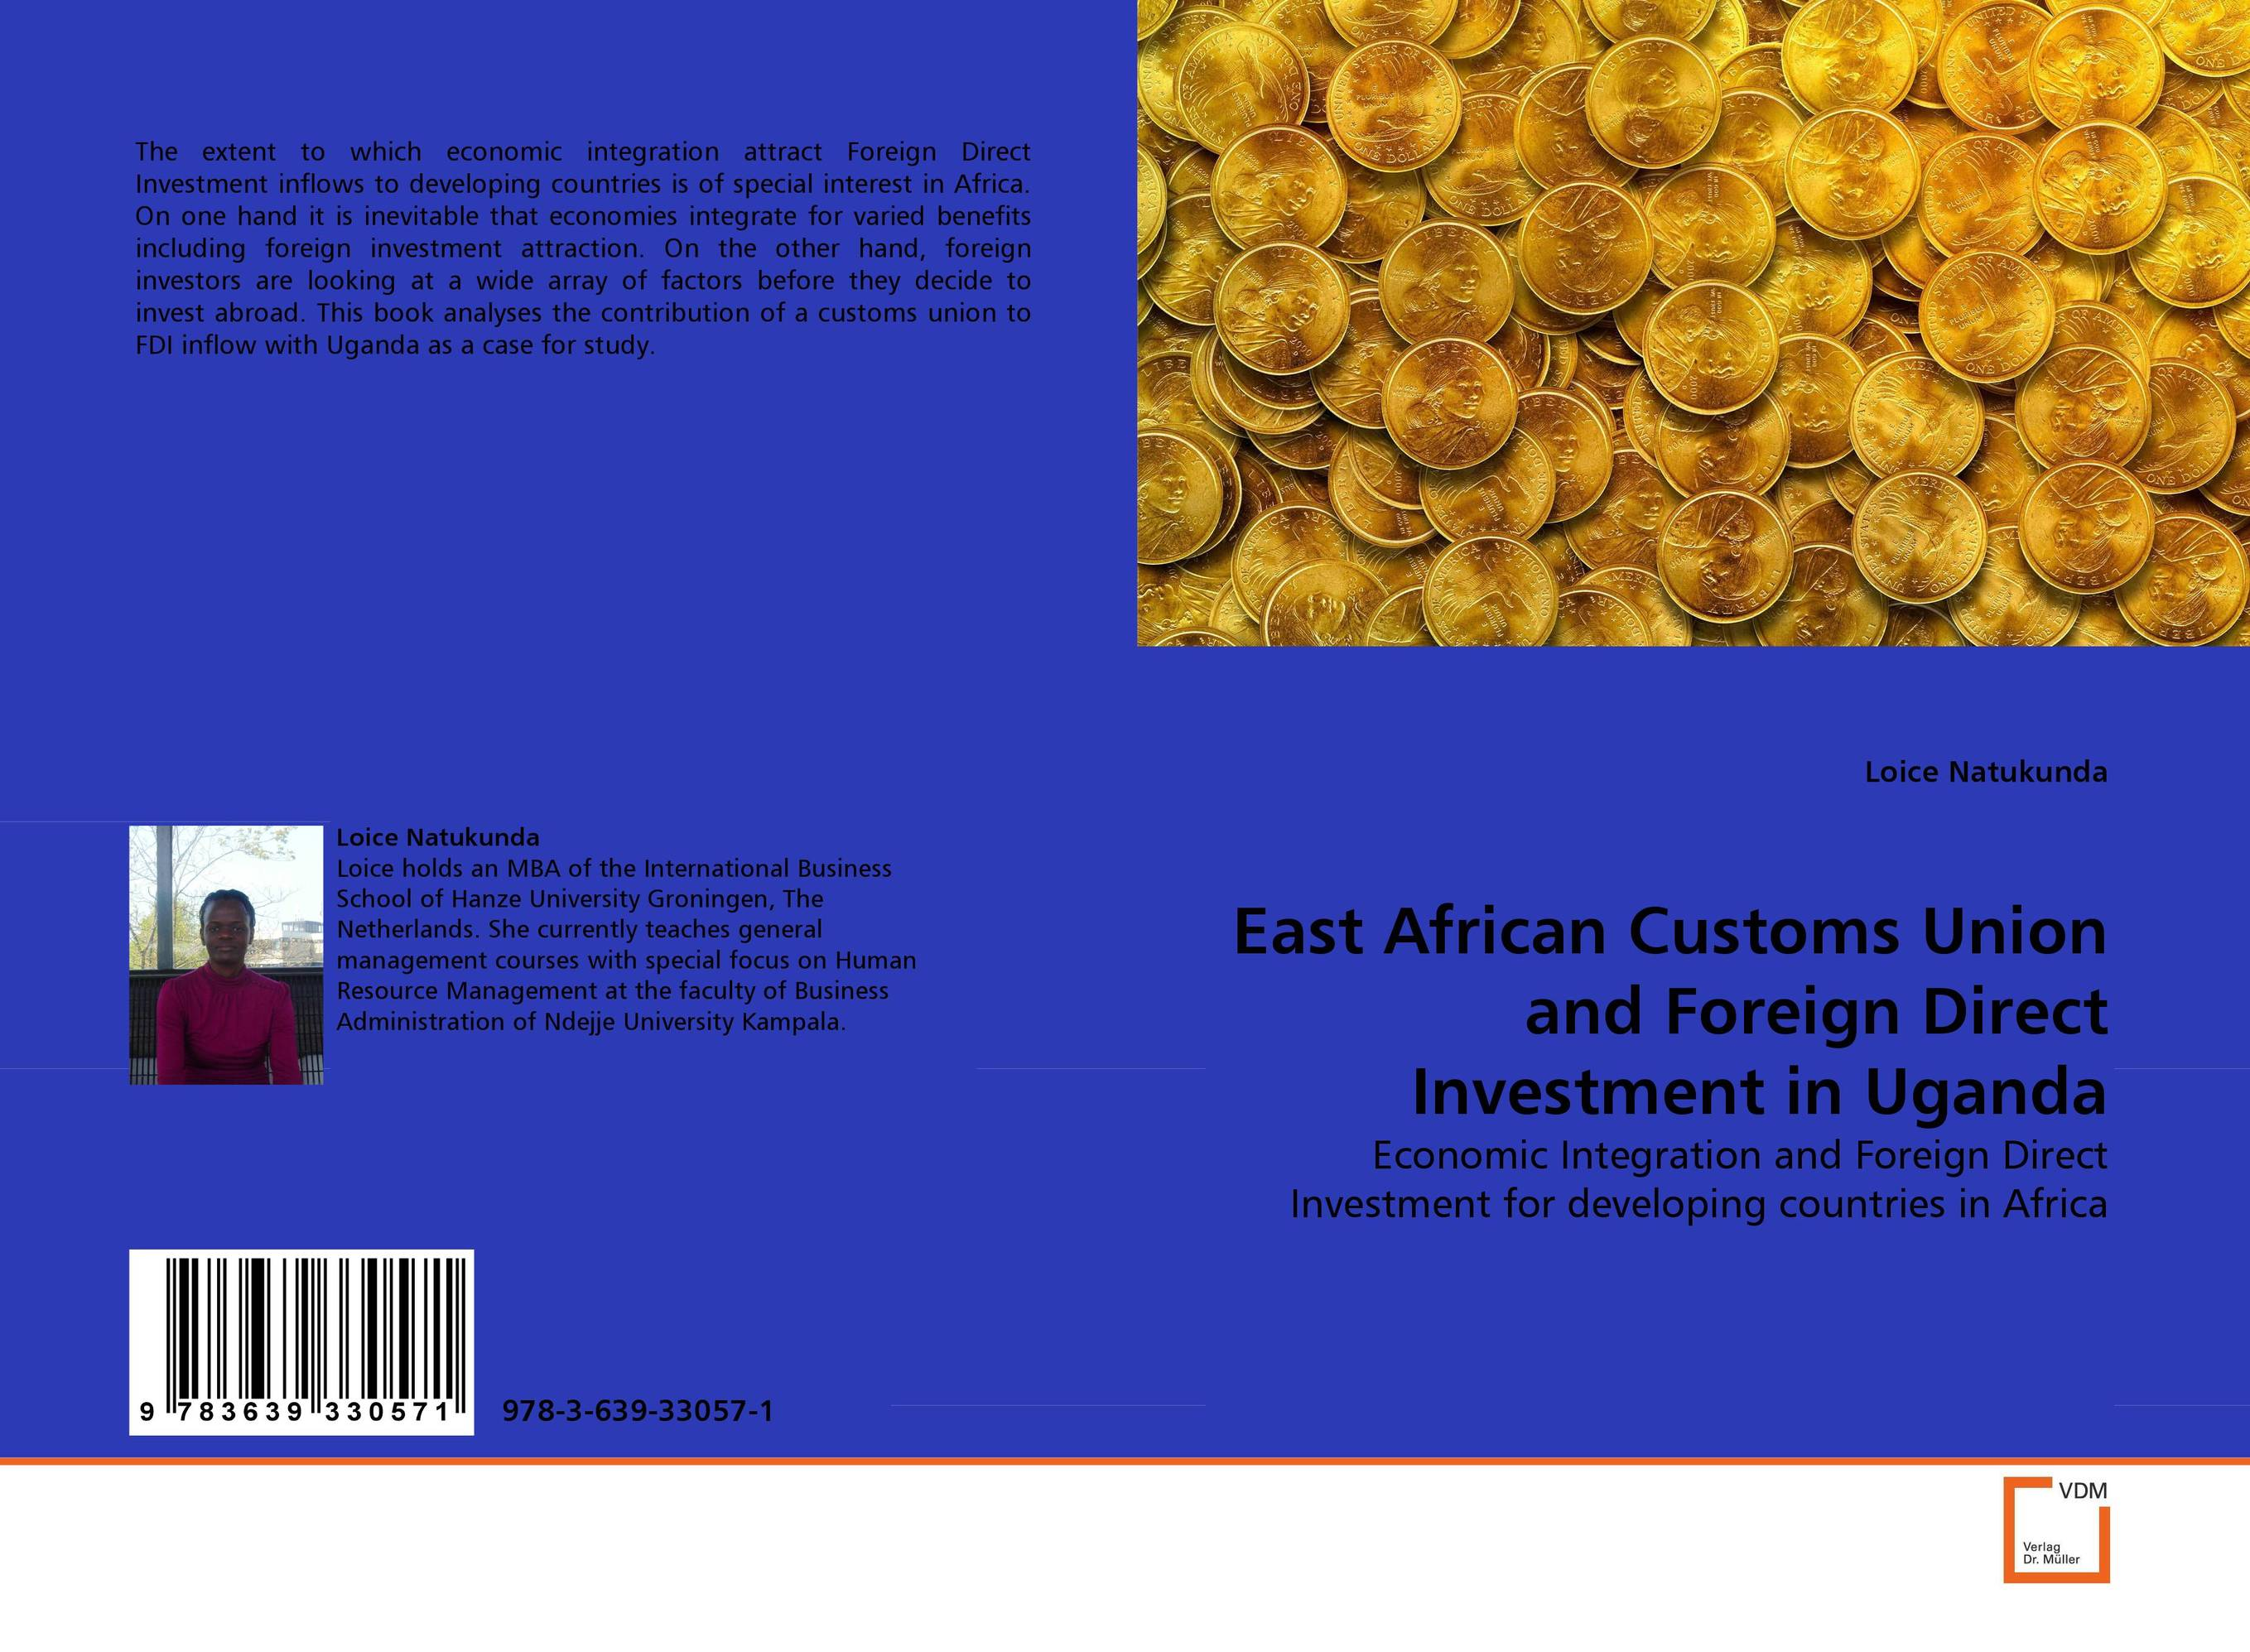 East African Customs Union and Foreign Direct Investment in Uganda joshua nimako foreign direct investment laws